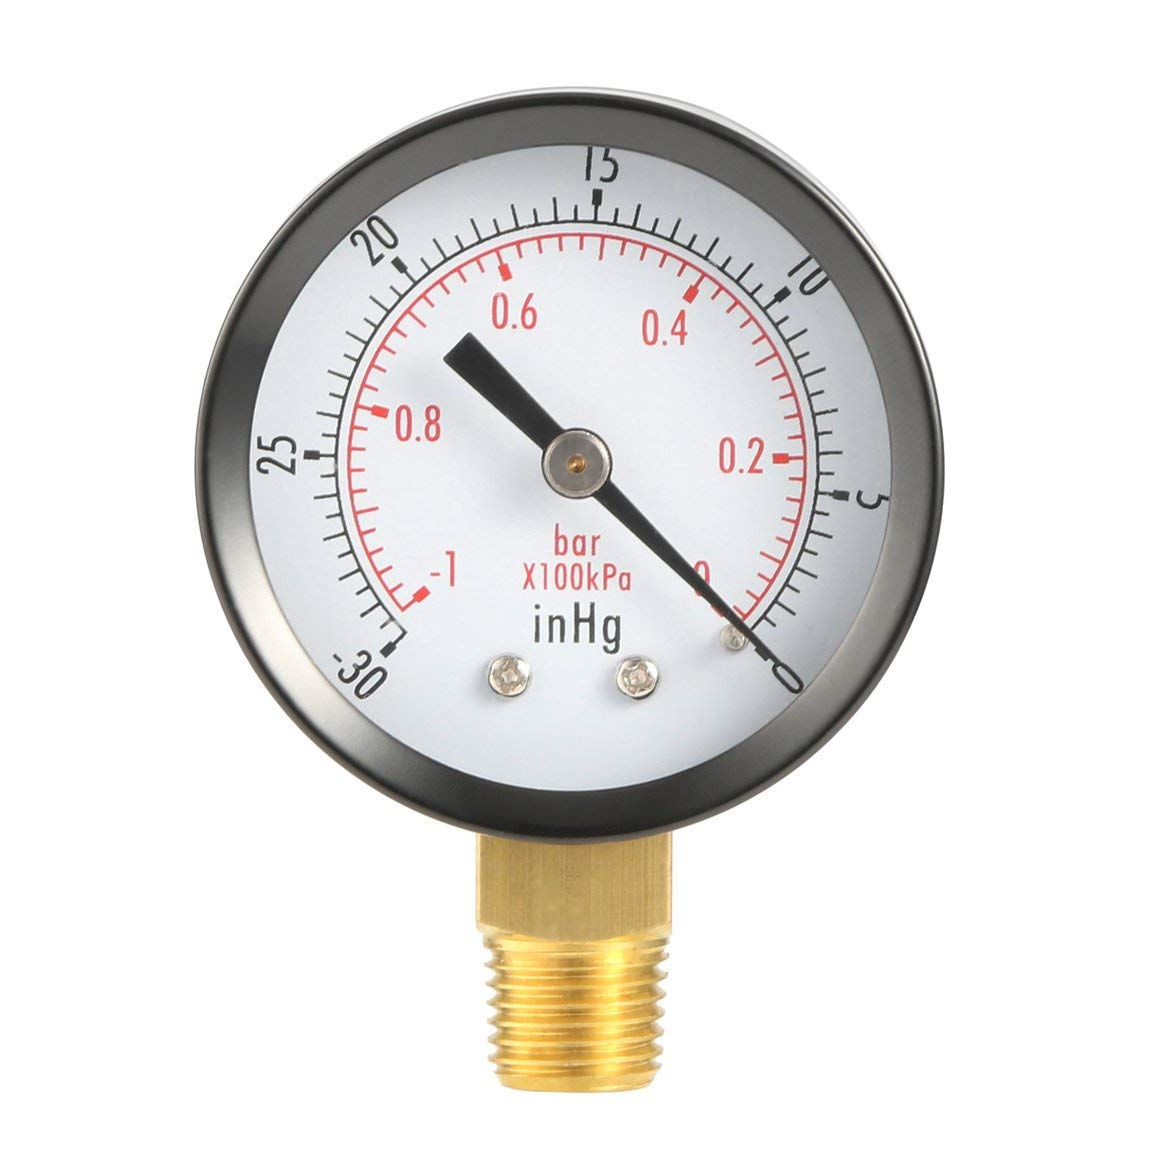 Fantasyworld Trockenprogramm Vakuum-Manometer Blk Stahl 1/4' NPT Lower Mount -30HG / 60 psi TS50-1 + 1 Copper Alloy Dual-Skala PSI